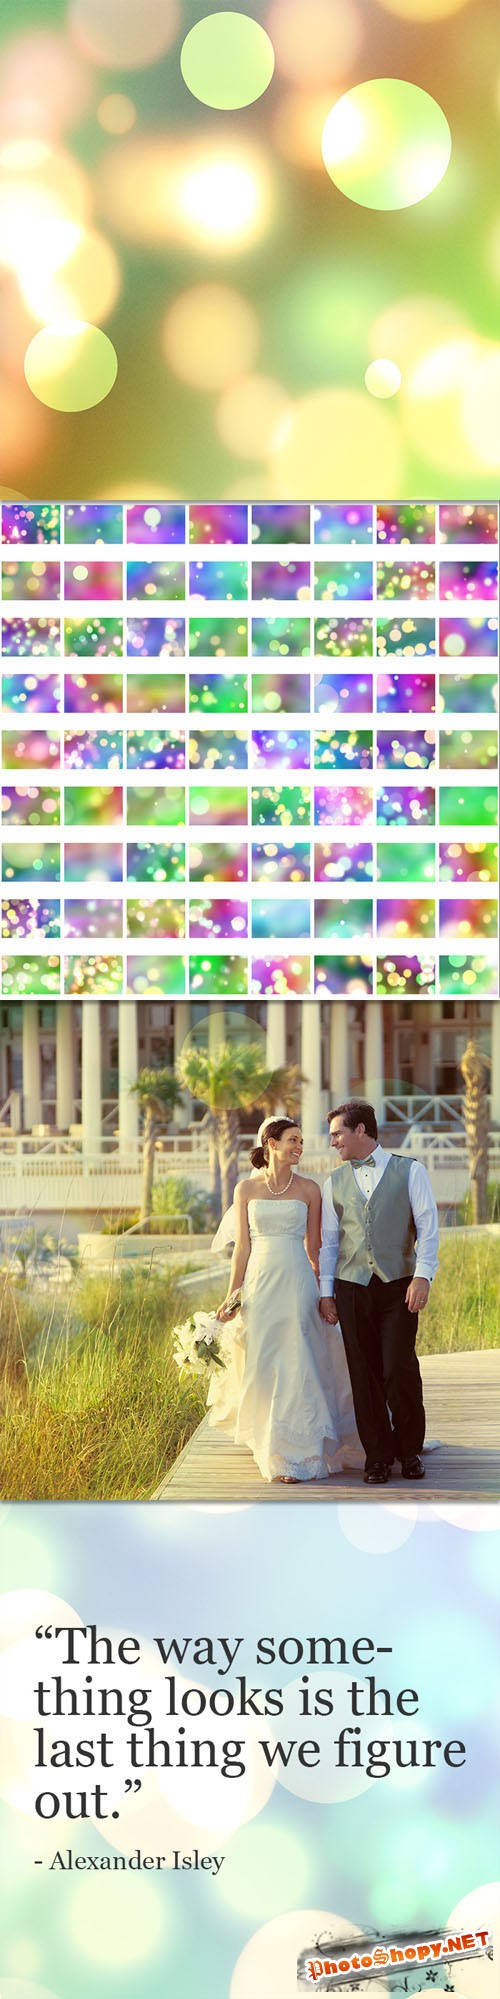 15 Vibrant Bokeh Backgrounds